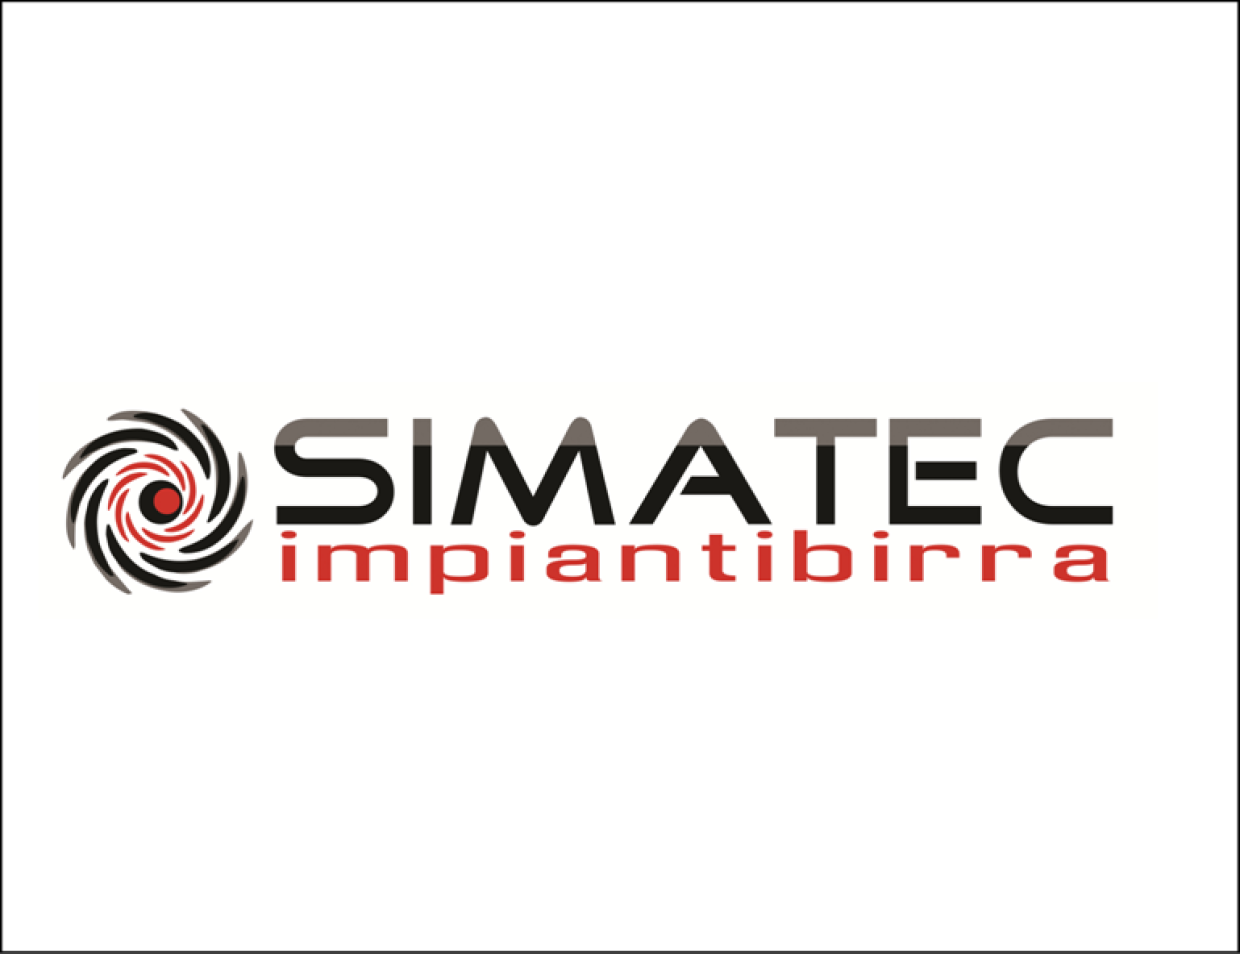 SIMATEC, breweries equipment, new sito online